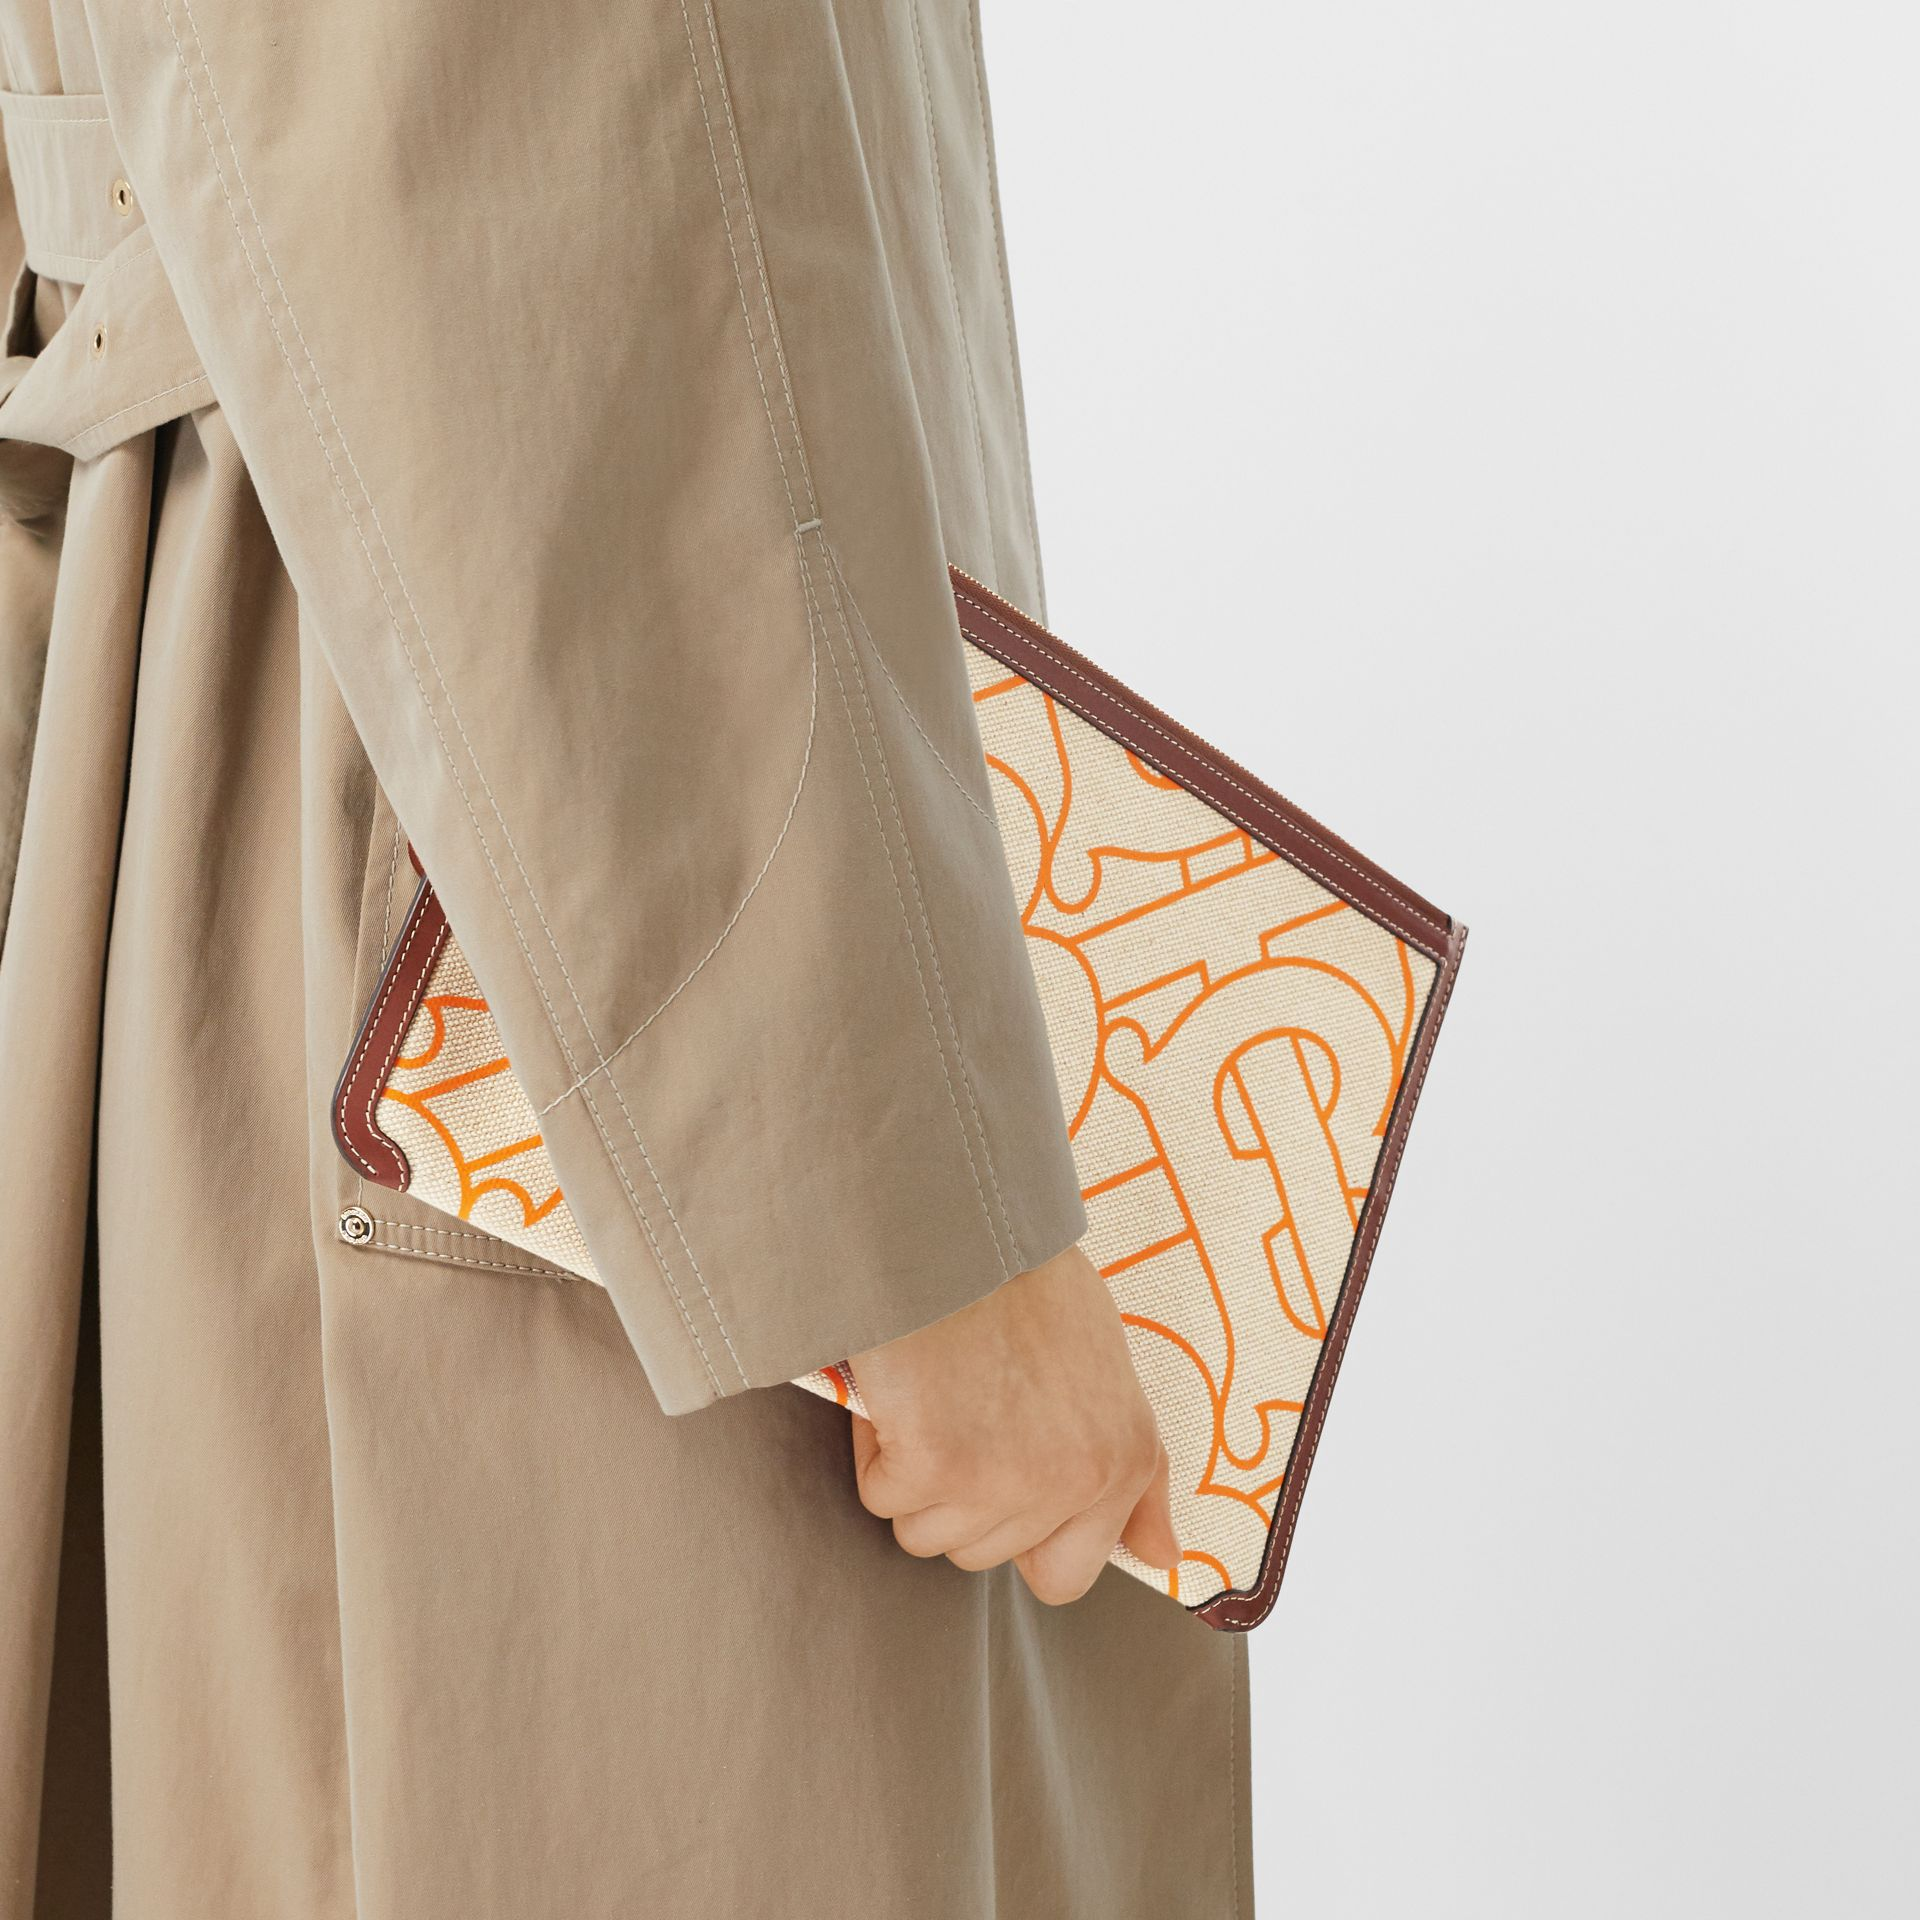 Monogram Motif Canvas and Leather Pouch in Natural/orange - Women | Burberry United Kingdom - gallery image 2